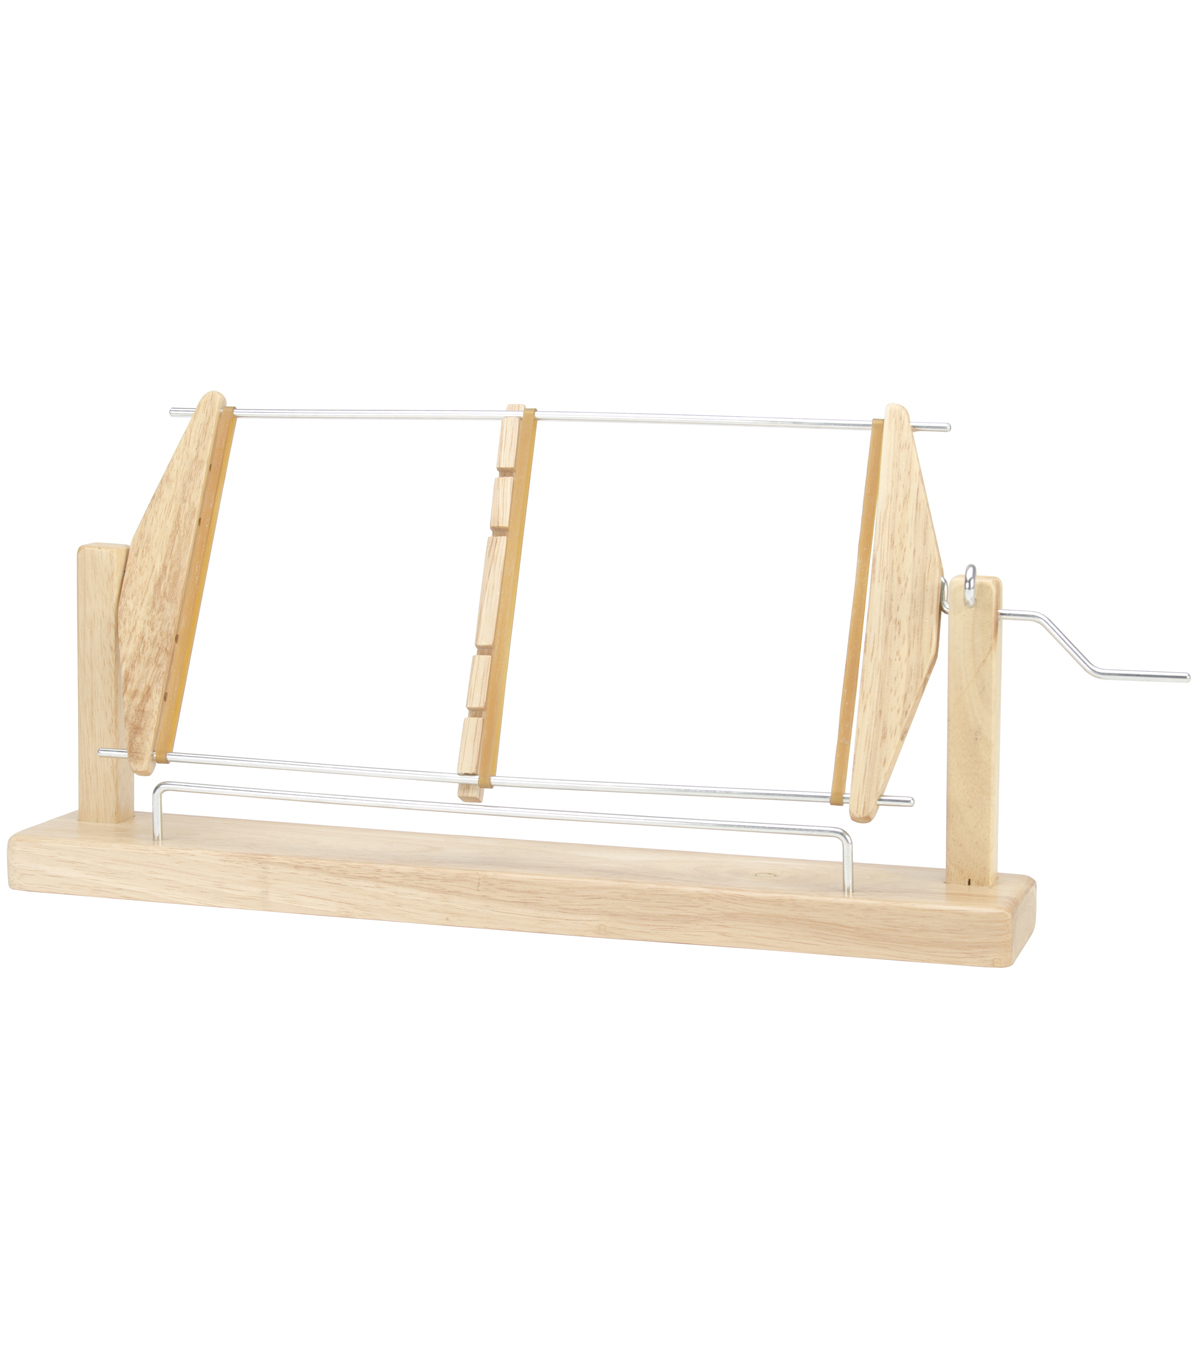 Fringe Maker 11\u0022 Wood Frame